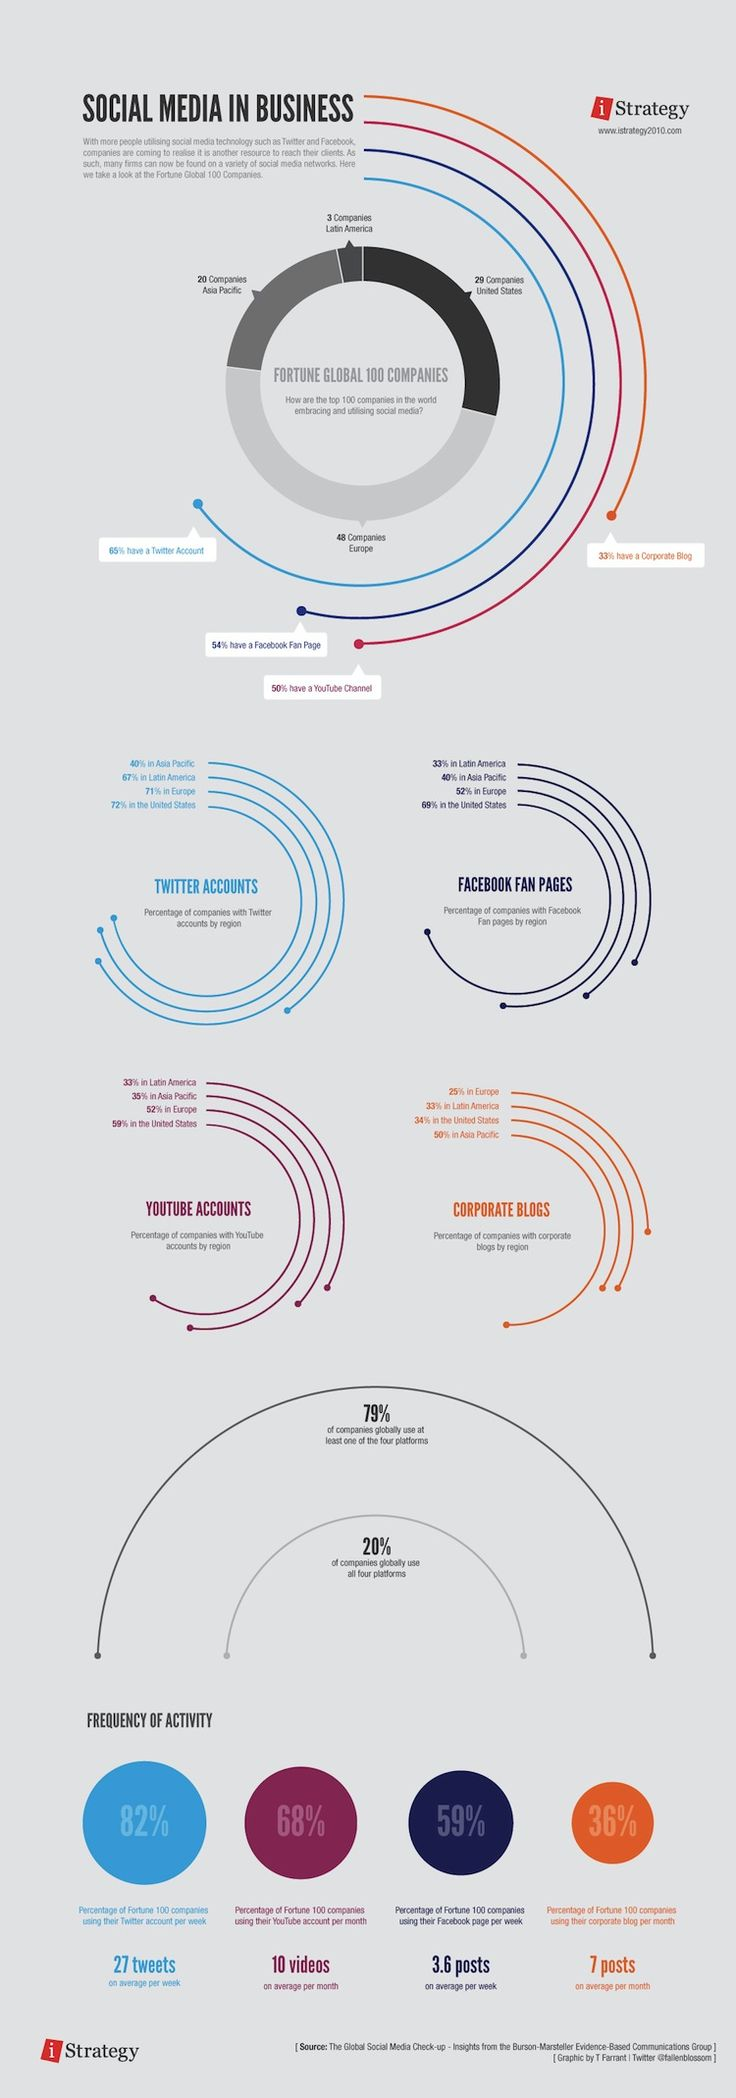 Infographic: Fortune 100 Companies Jump on Social-Media Bandwagon | Co.Design: business + innovation + design